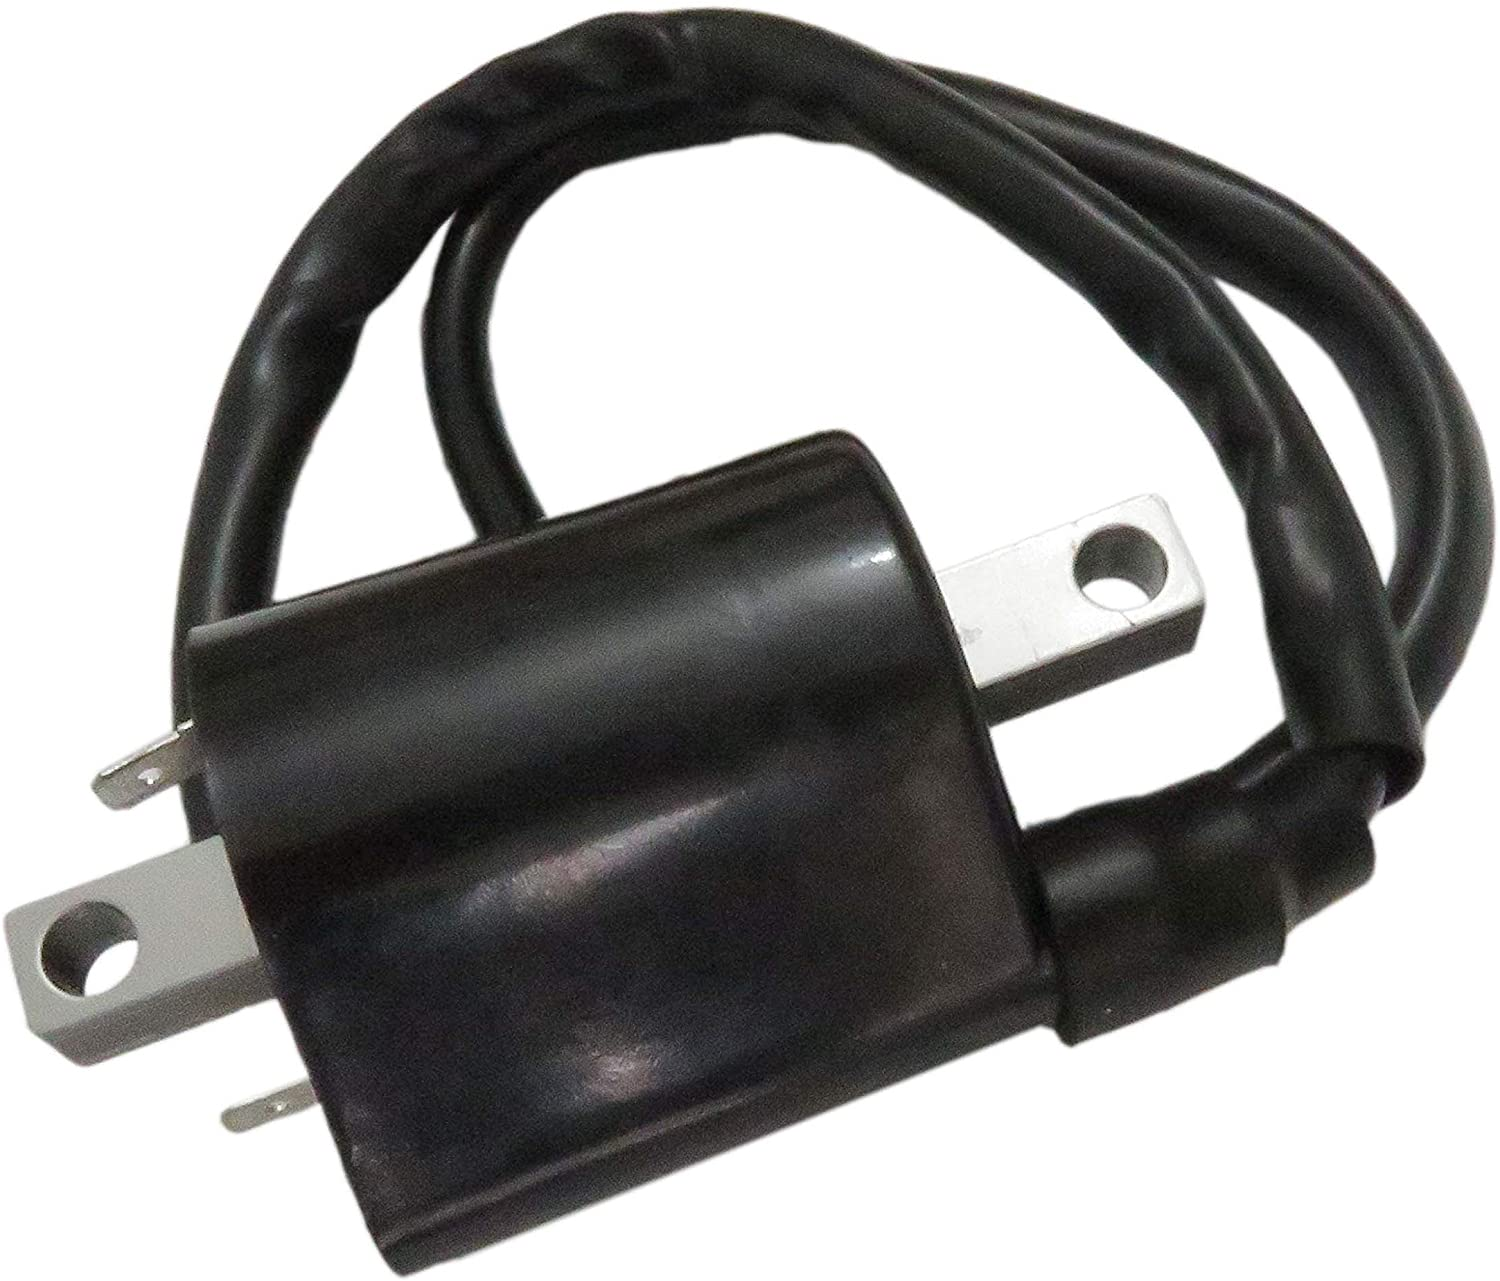 12V Ignition Coil Fits 4 Cycle Yamaha Golf Cart G2 G9 G11 Replace J38-82310-20-00 1985-1995